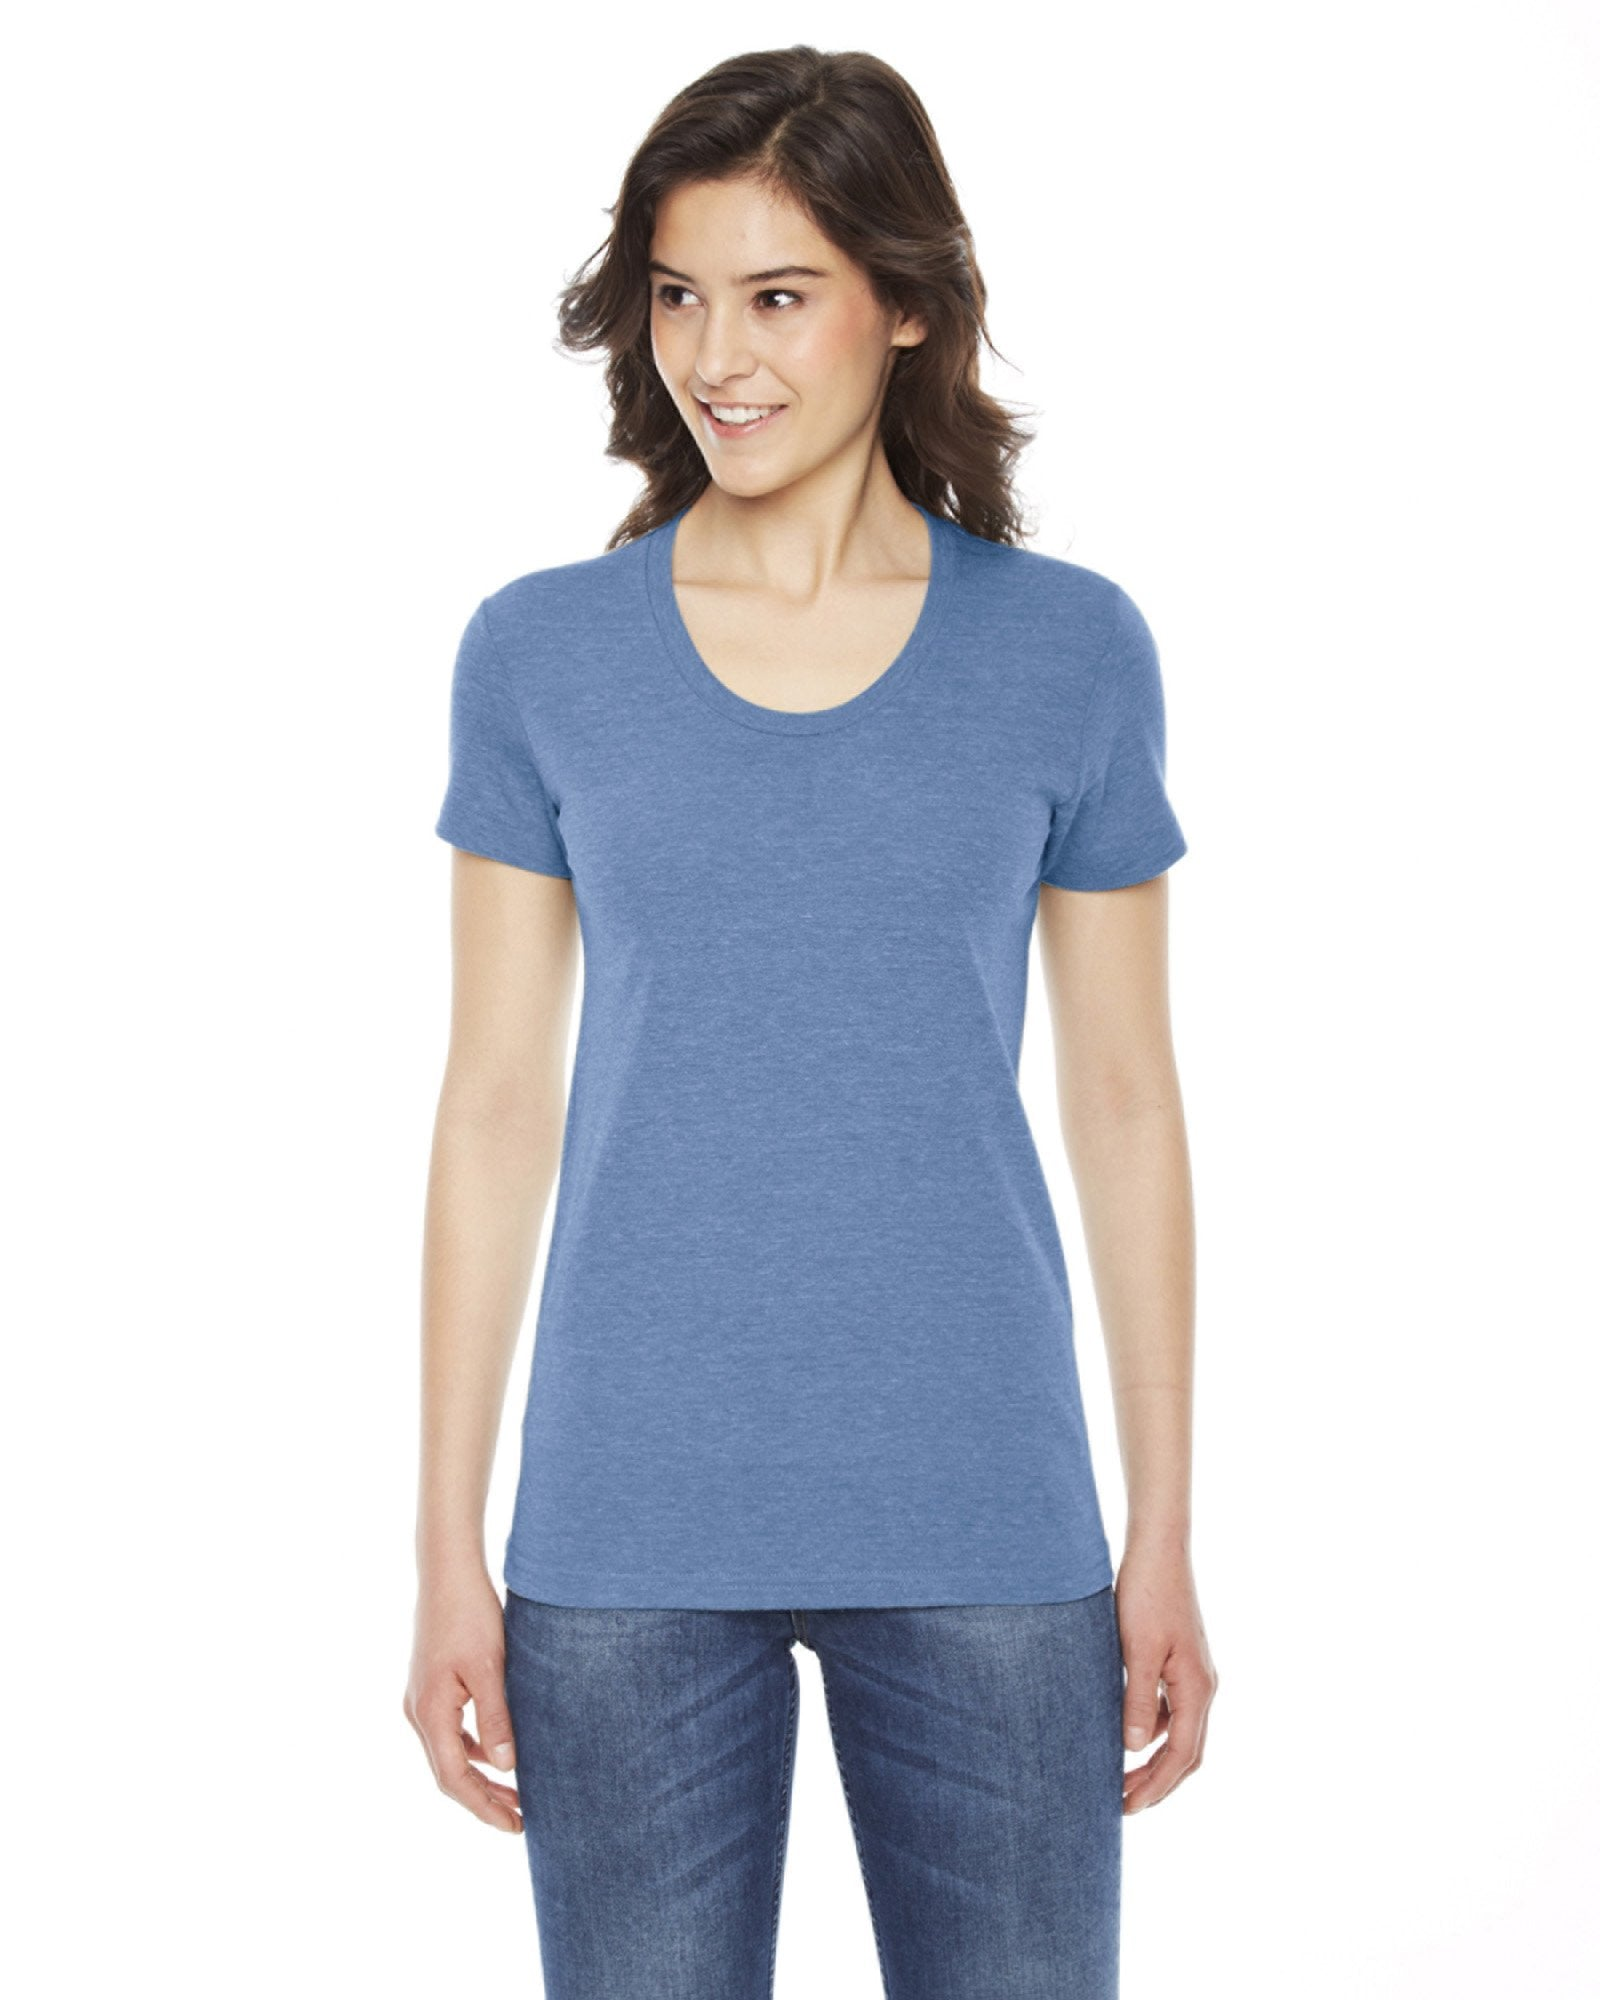 American Apparel - TR301 - Ladies' Triblend Short-Sleeve Track T-Shirt